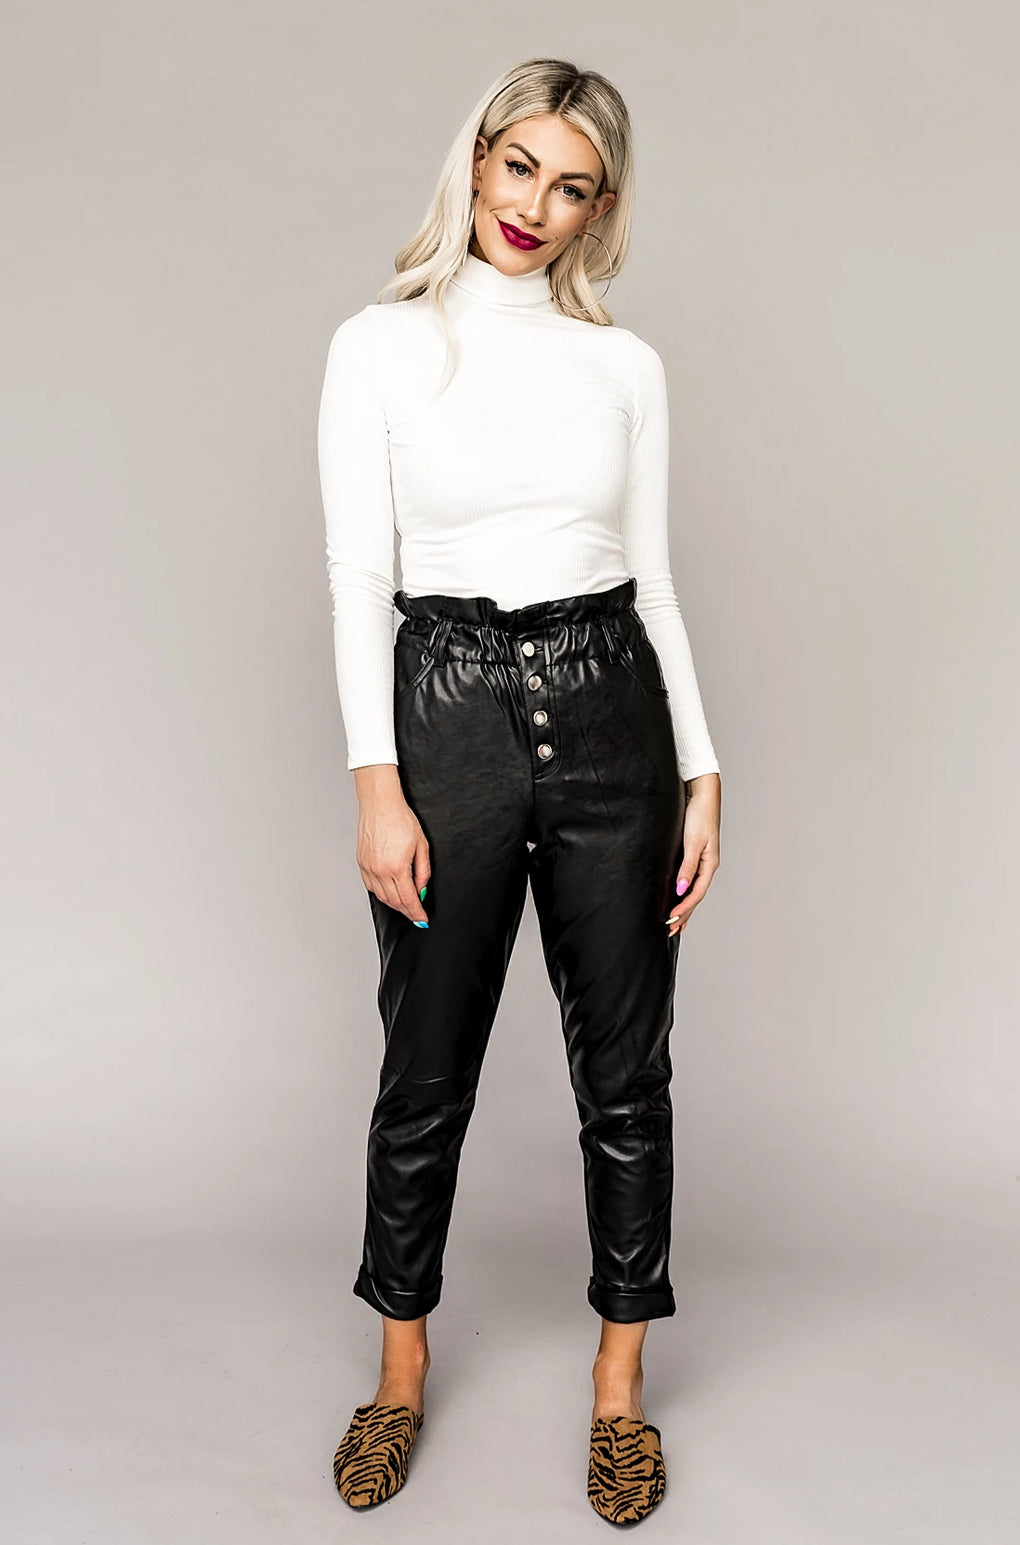 City Chic Vegan Leather Pants